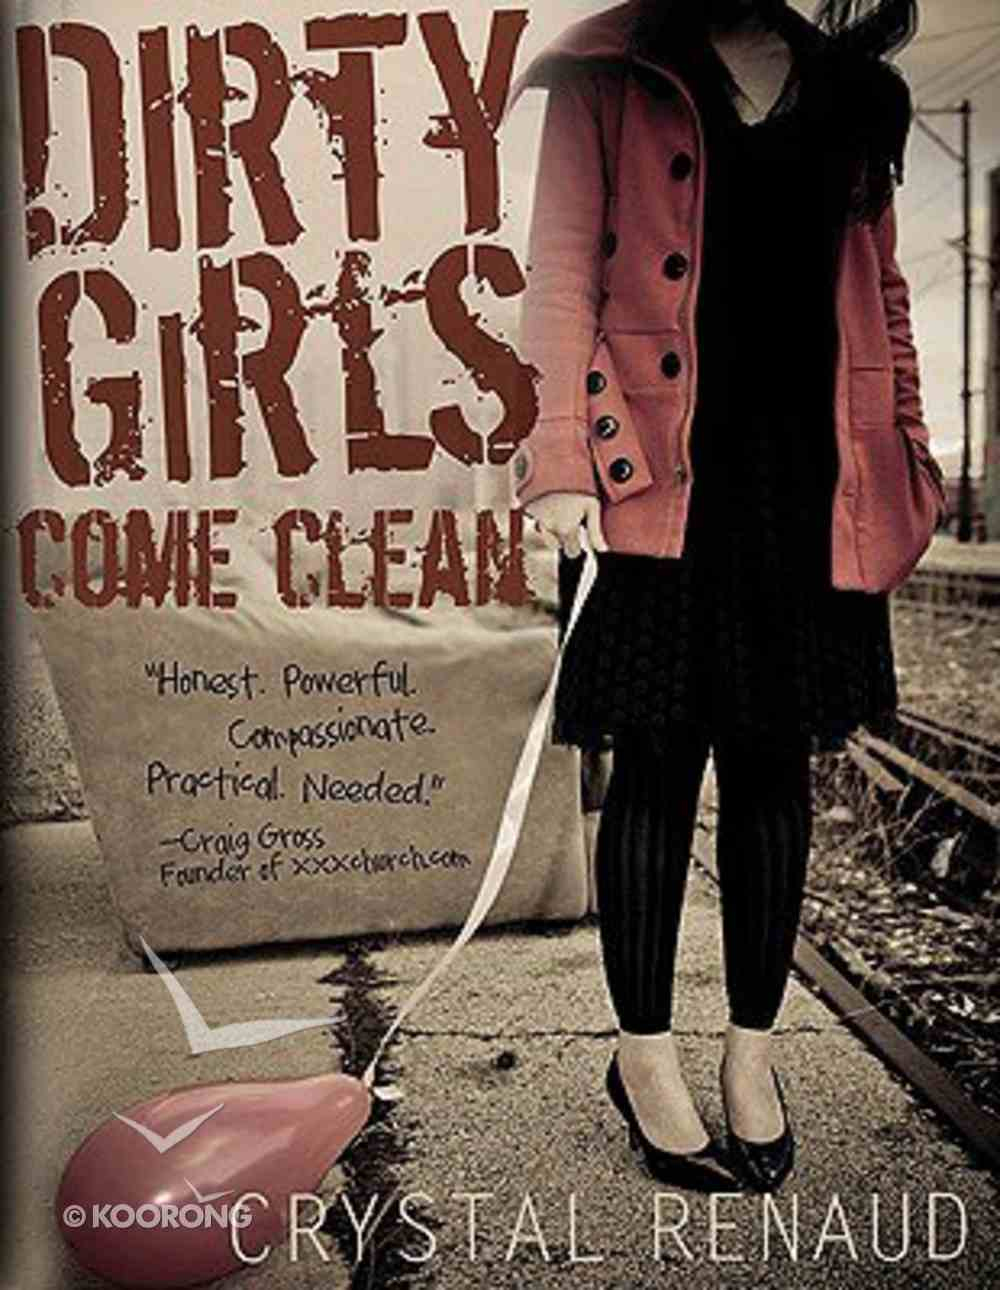 Dirty Girls Come Clean Paperback